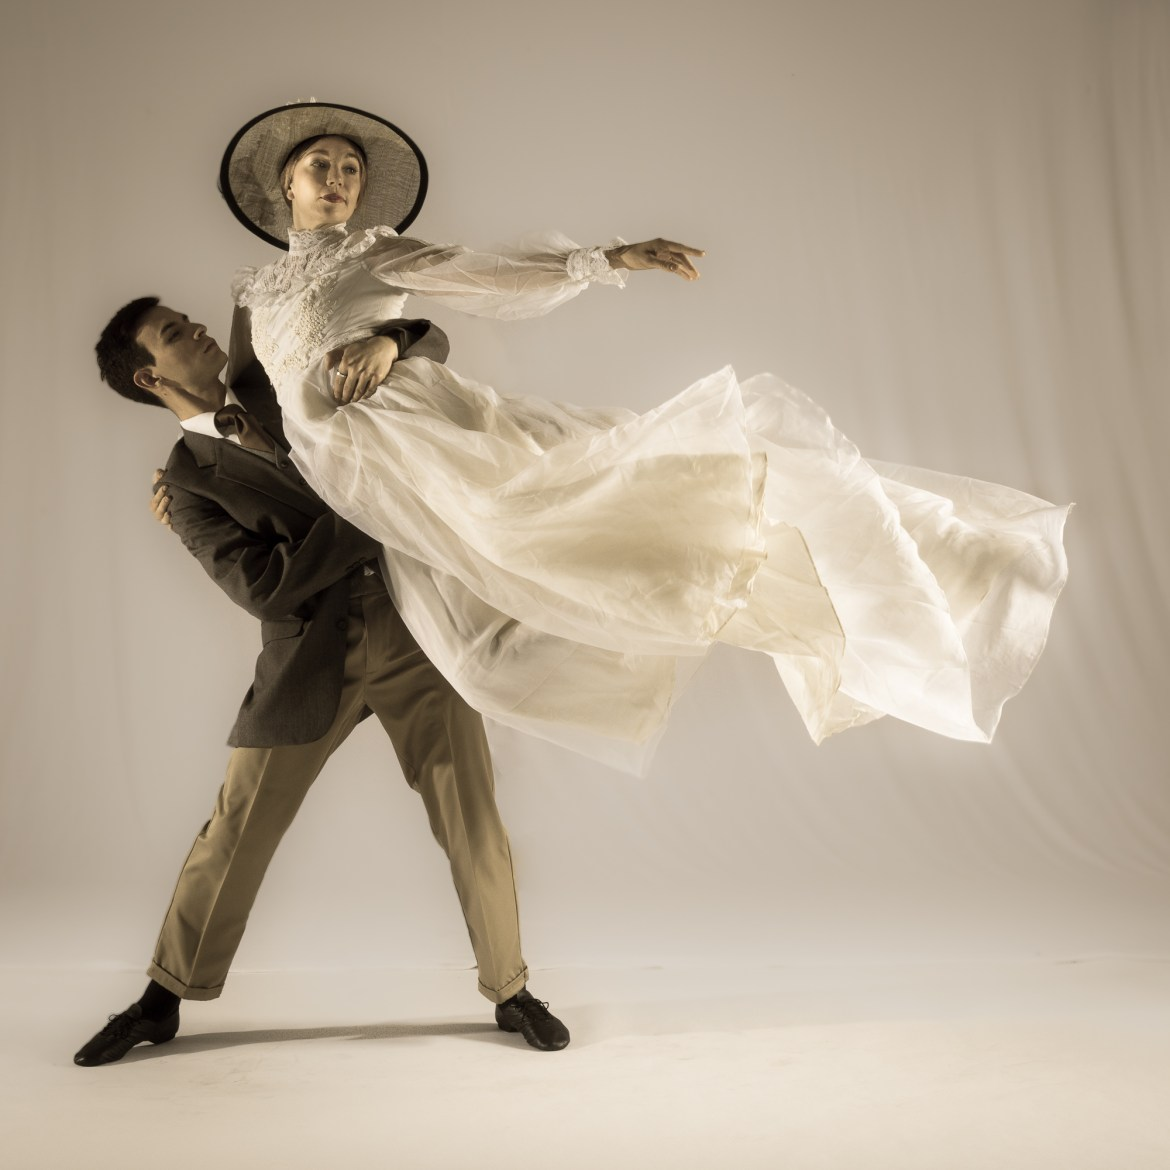 """The Big Muddy Dance Company """"Lemp Legends: A Ghost Story"""" (Photo by Gerry Love)"""